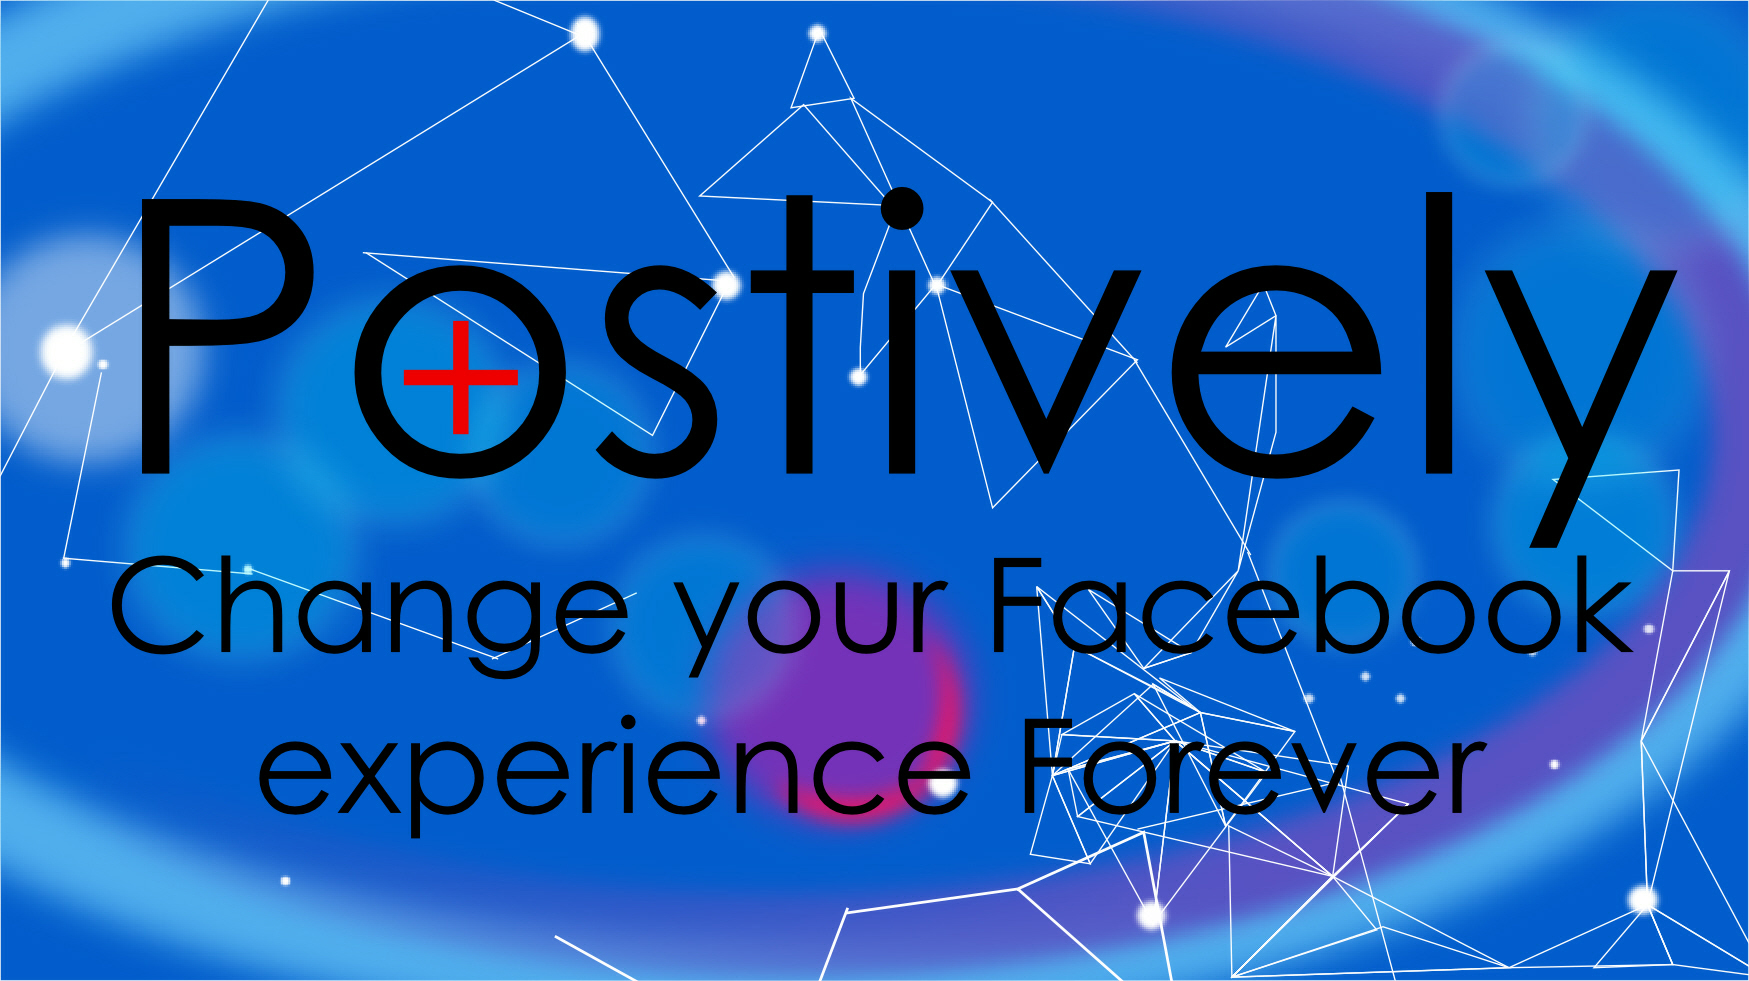 change your facebook experience